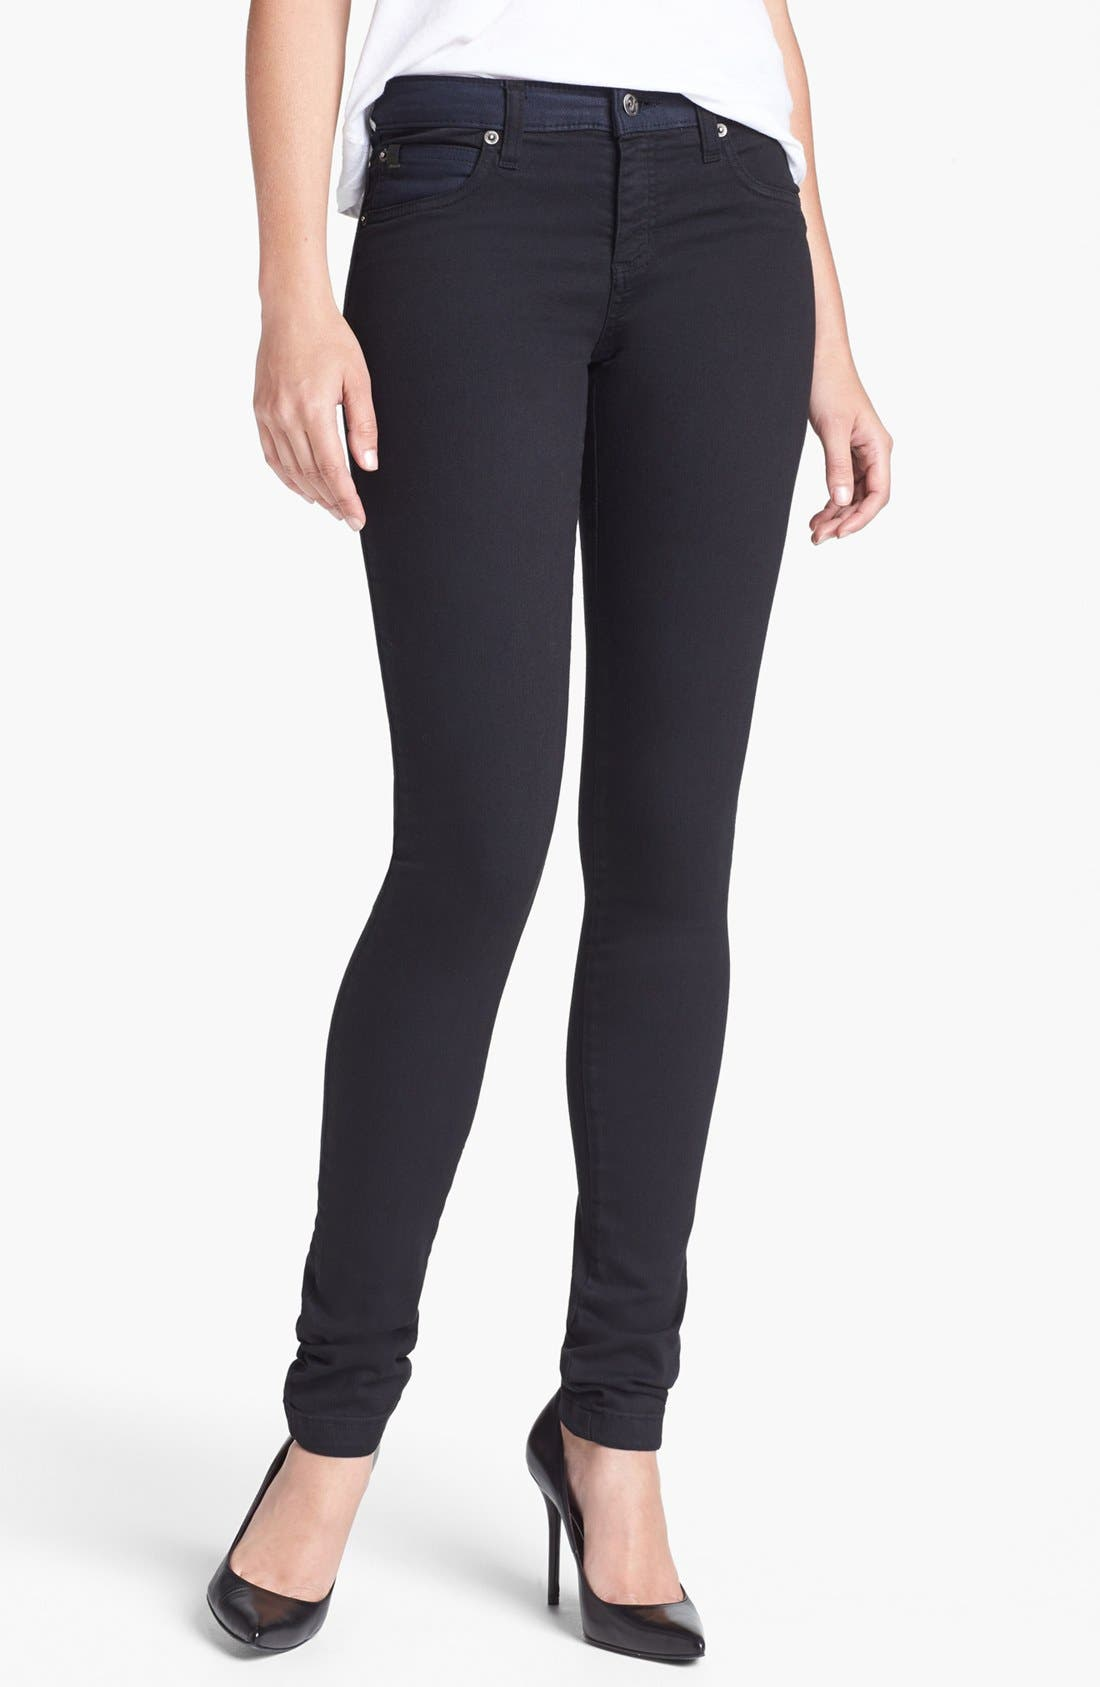 Alternate Image 1 Selected - Yoga Jeans by Second Denim High Rise Colorblock Skinny Jeans